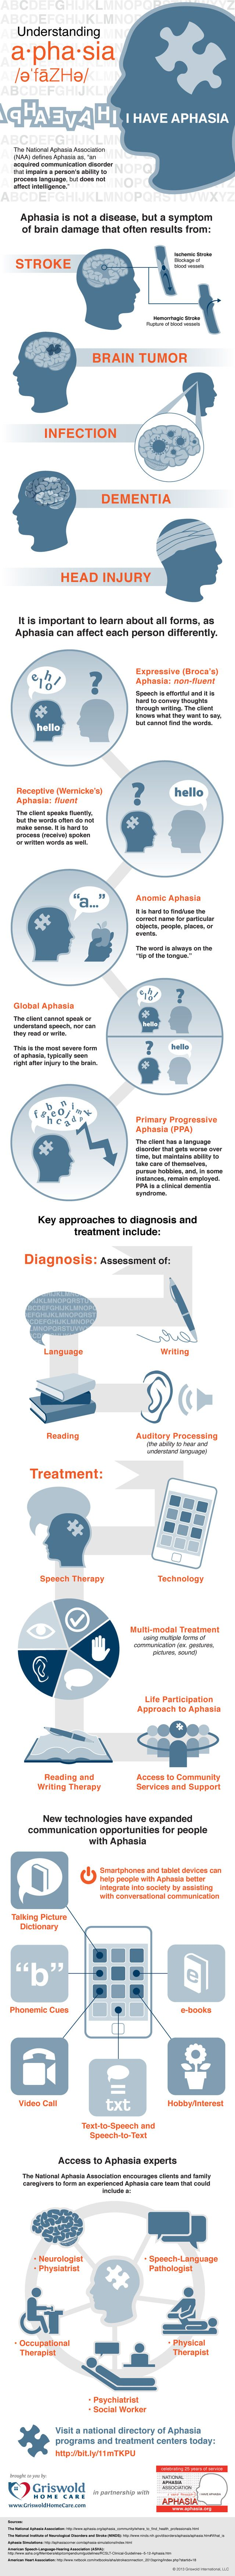 We hope that this educational infographic helps drive positive outcomes for all people living with Aphasia, and those who support them through advocacy, treatment and education.